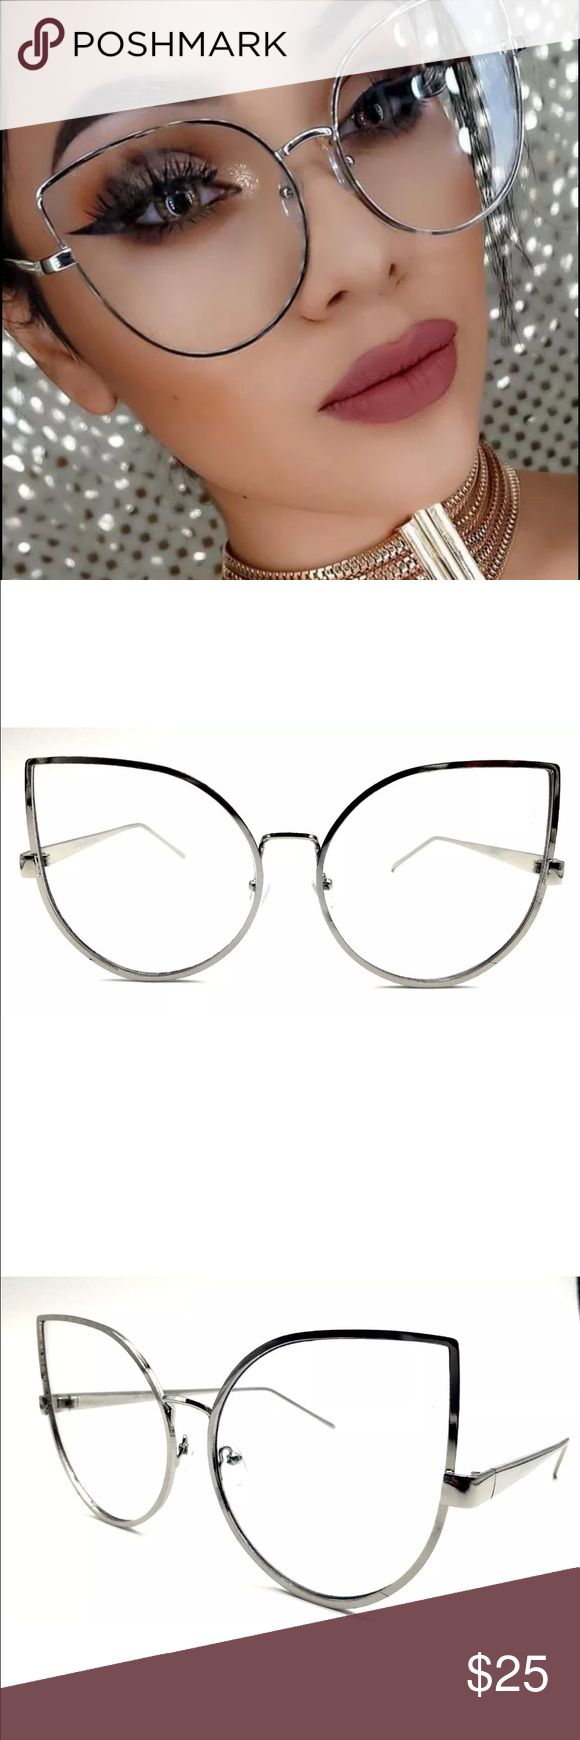 New✨ Oversized Cat Eye Clear SILVER Glasses 😍✨ 🚫NO- Offers‼️ PRICE IS FIRM❗️  New Fashion Trend- super cute Oversized Black Frame Clear Glasses 😍✨  ✨Fashion Accessory  🔸Brand New✨ 🔸PRICE IS FIRM- already listed at lowest price  🔸If you want to save please look into bundling  🔸In Stock 🔸No Trades 🔸Will ship same day as long as order is received by 1:00pm PST  🔺Serious Inquiries Only❣️  🔹Bundle one or more items from my boutique to only pay one shipping fee and SAVE Money❣️…